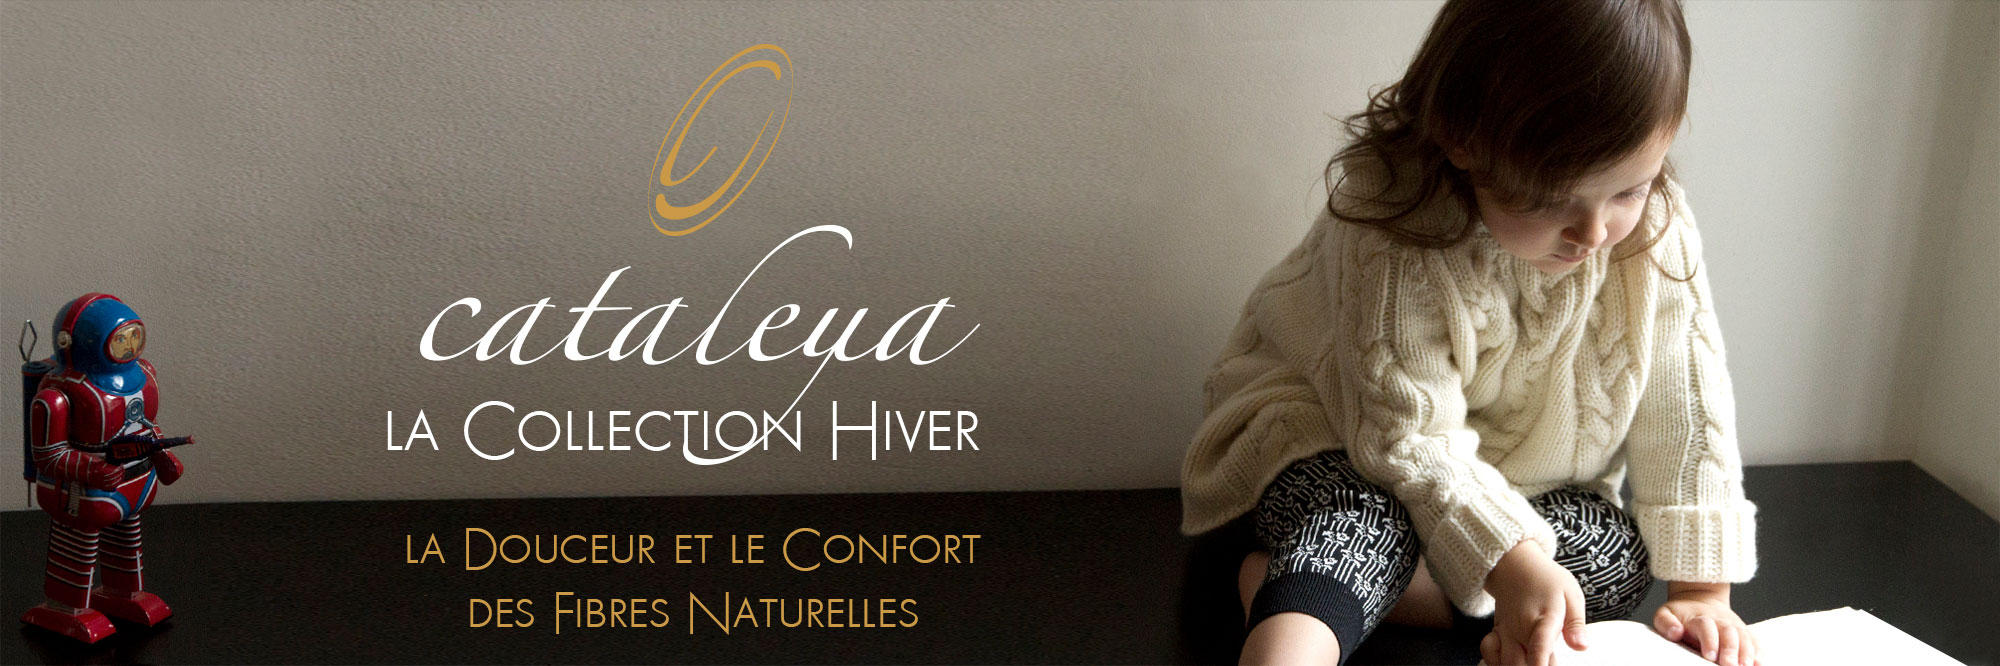 Collection hiver Cataleya